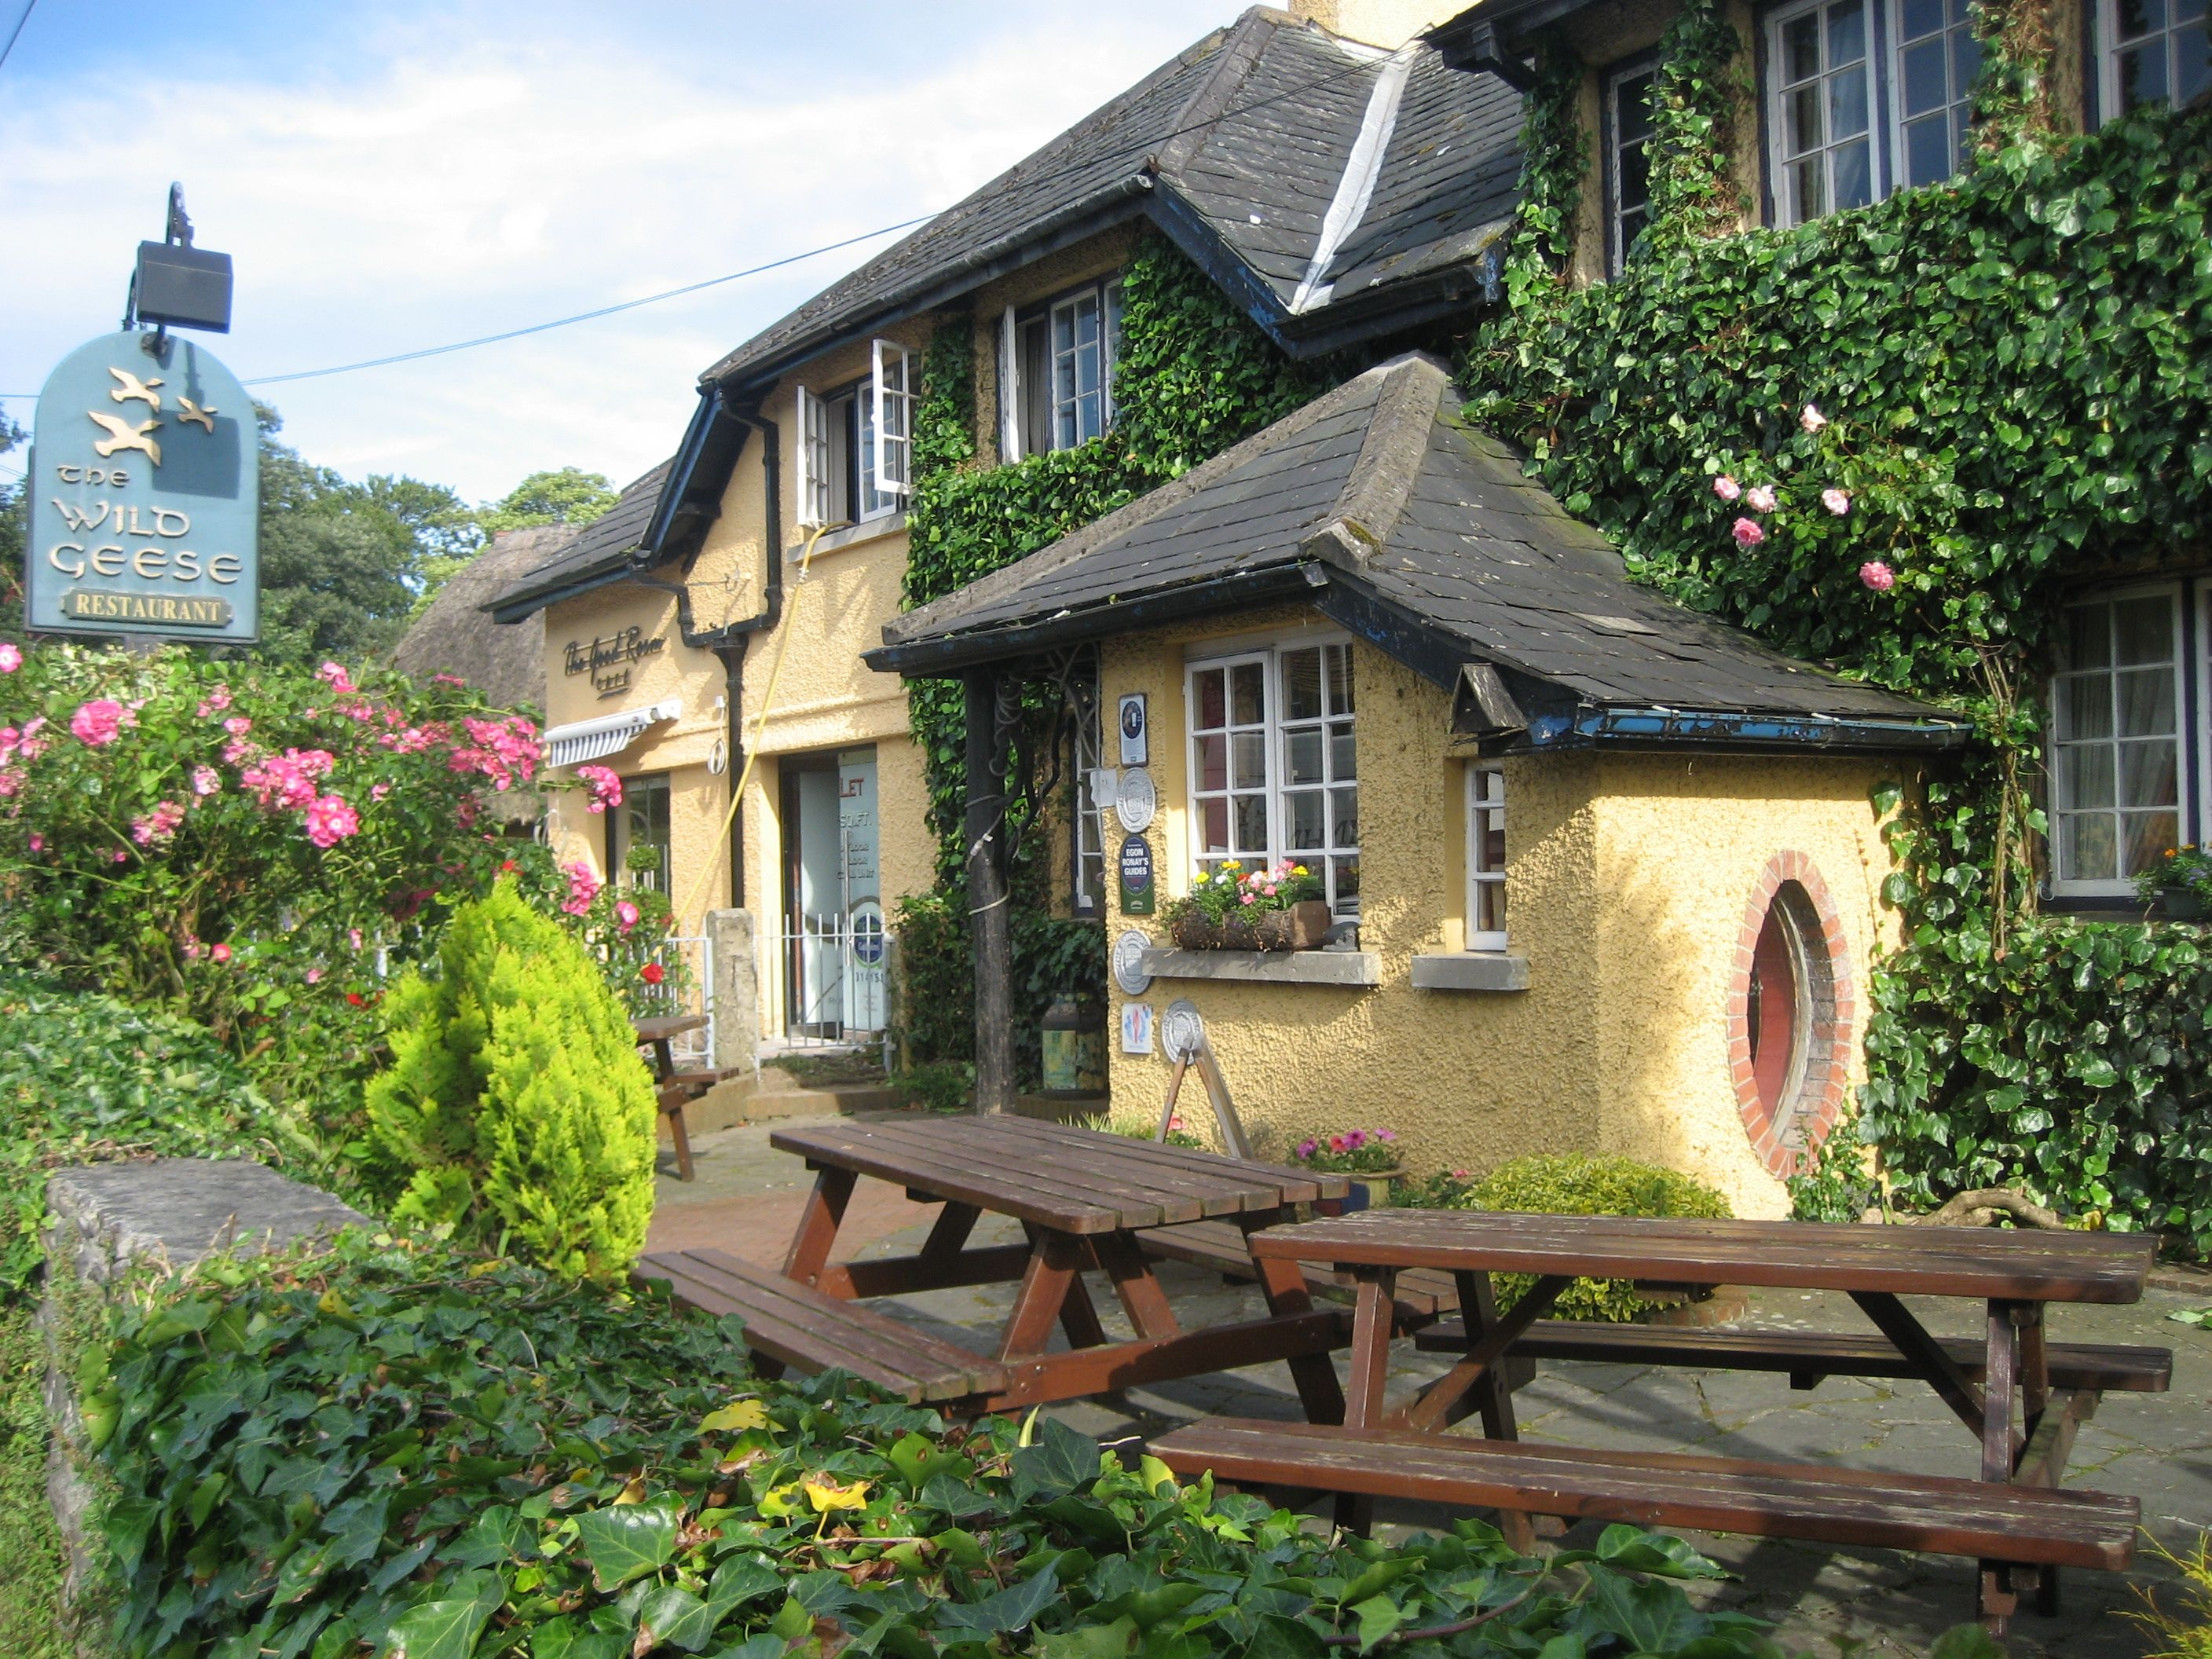 5 Towns Villages You Have To Visit In Ireland Beautiful Restaurant And Ireland Pictures